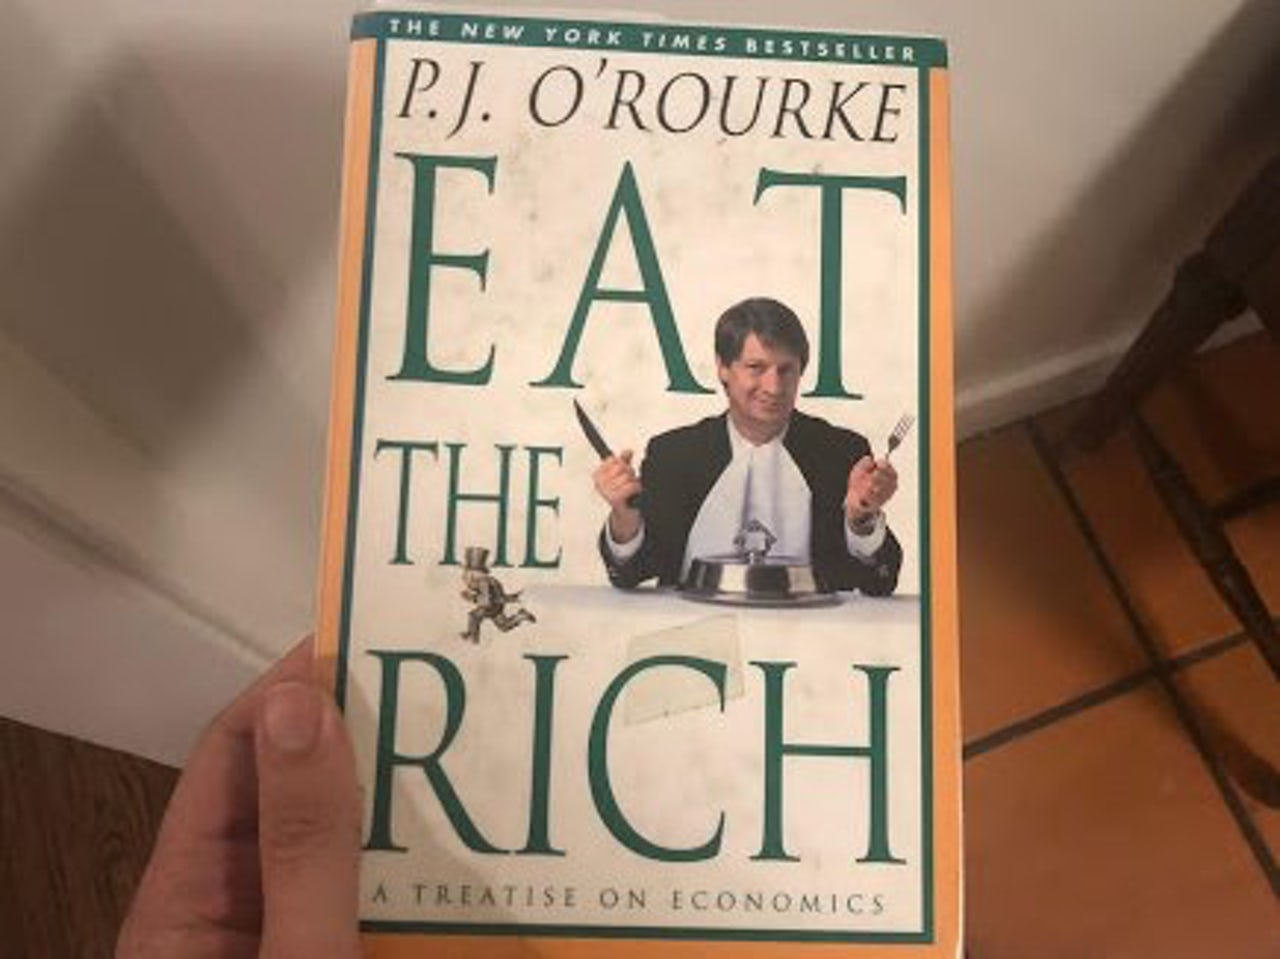 A modest proposal from Libertarian NPR guy P.J. O'Rourke. This book is from 1998.